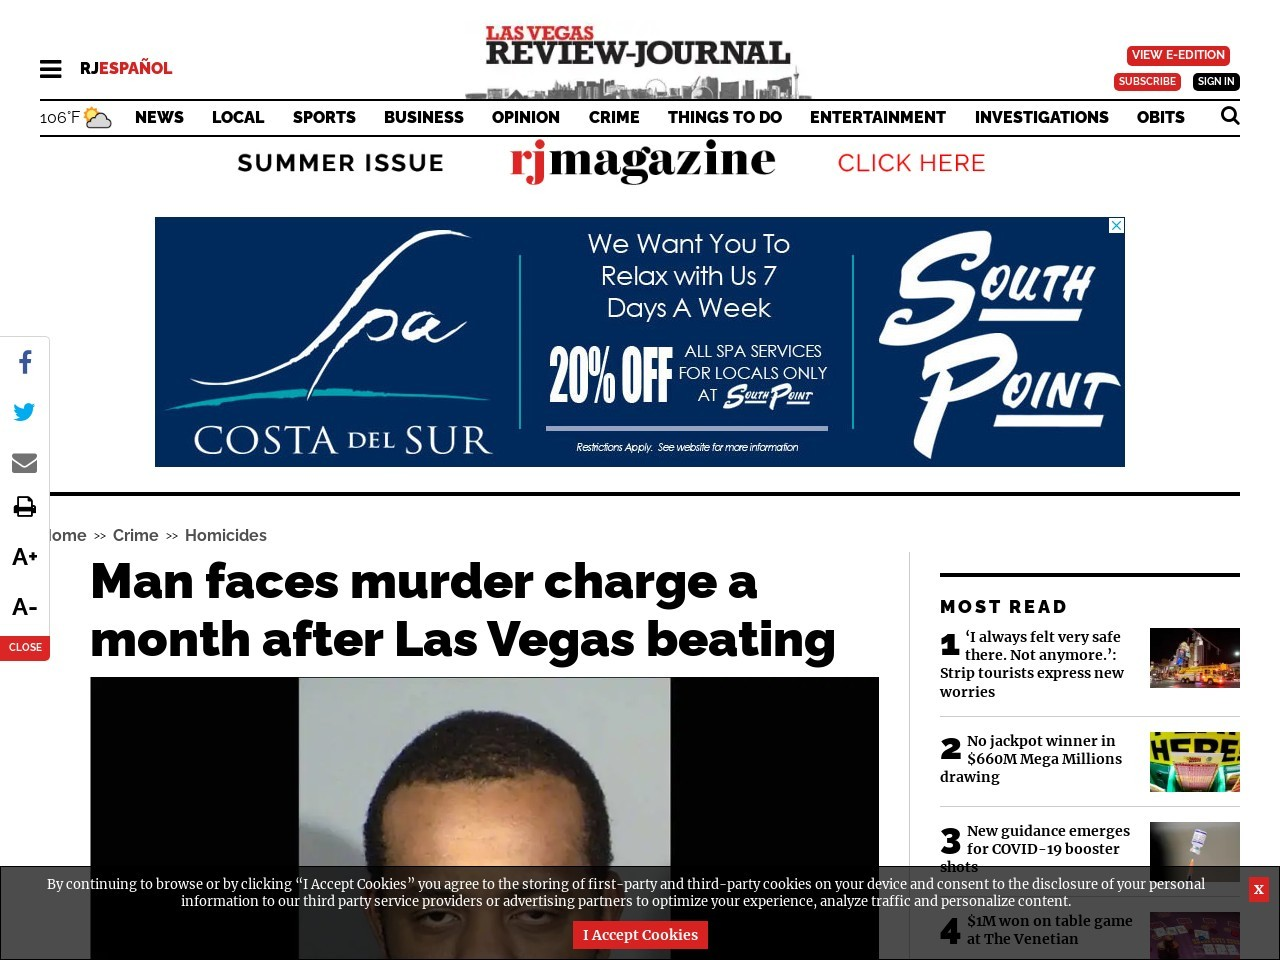 Man faces murder charge a month after Las Vegas beating